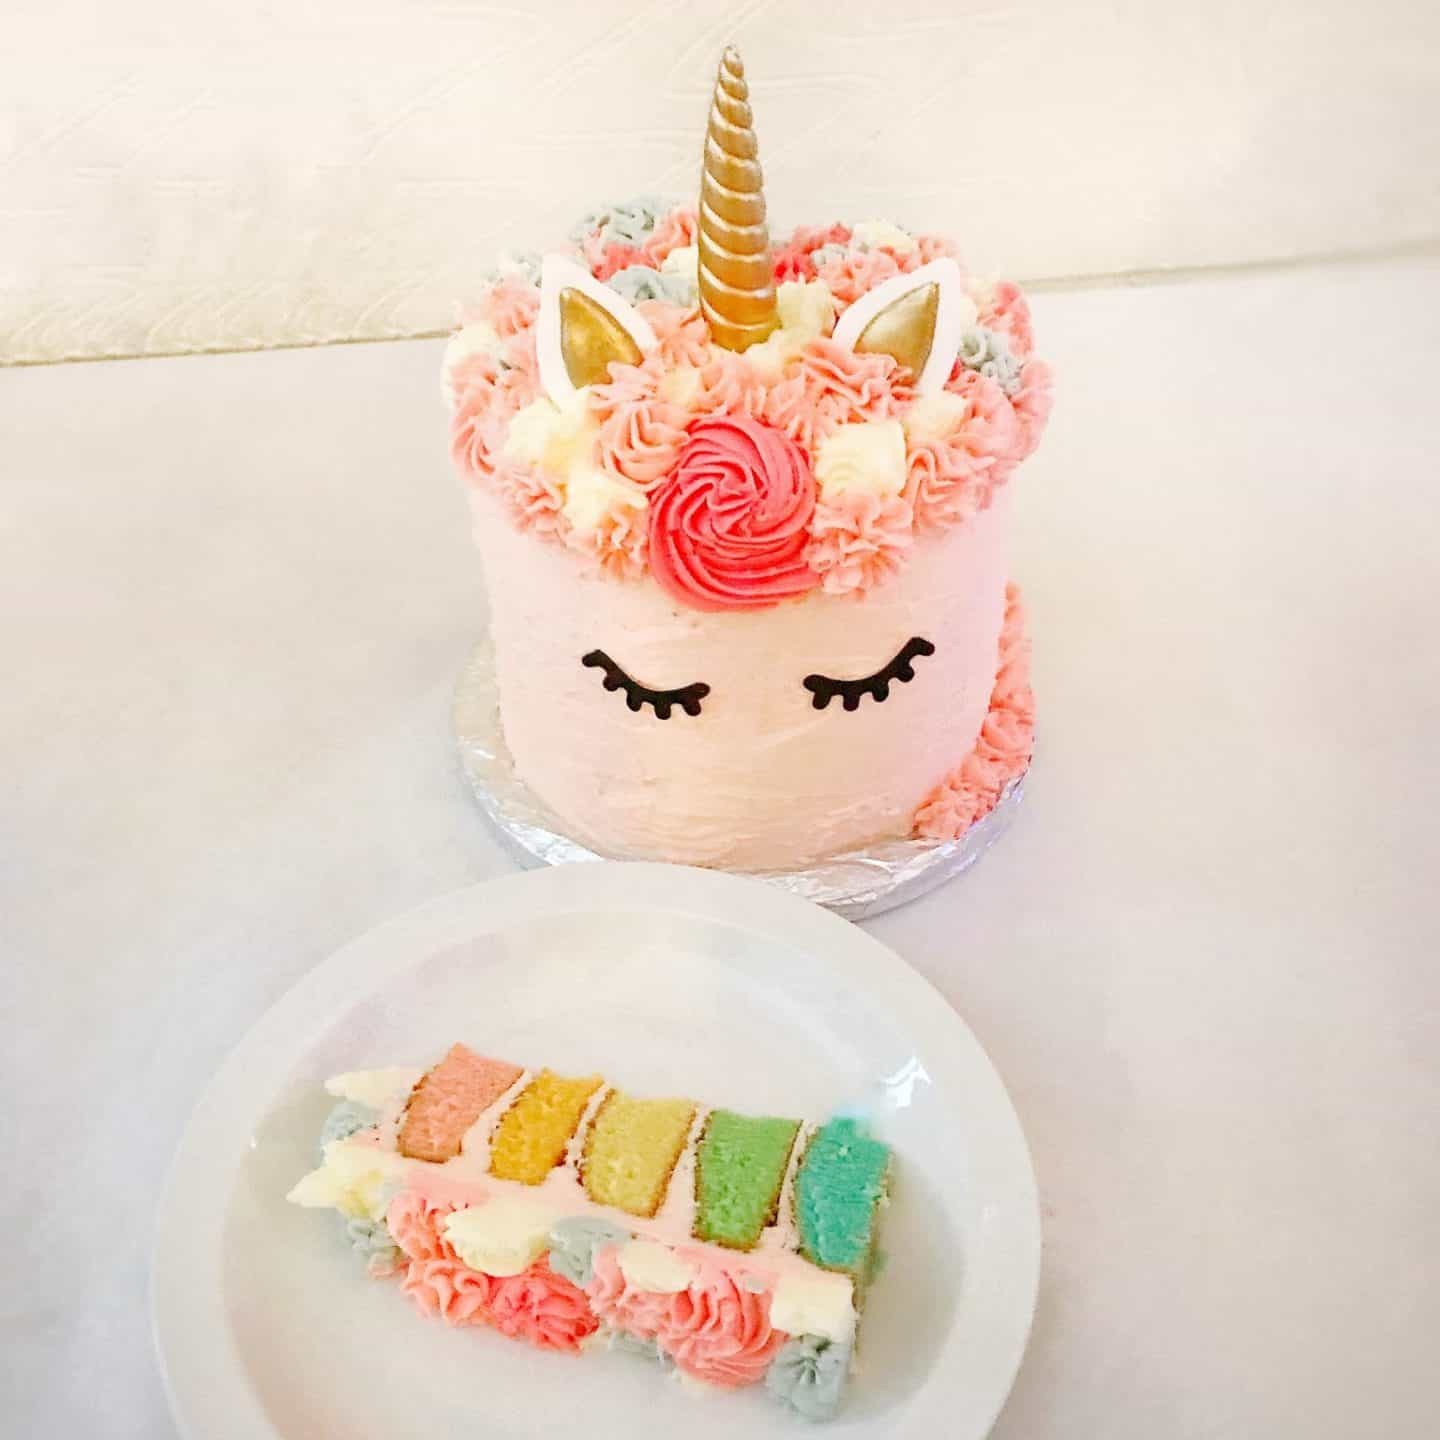 Rainbow unicorn cake sliced up